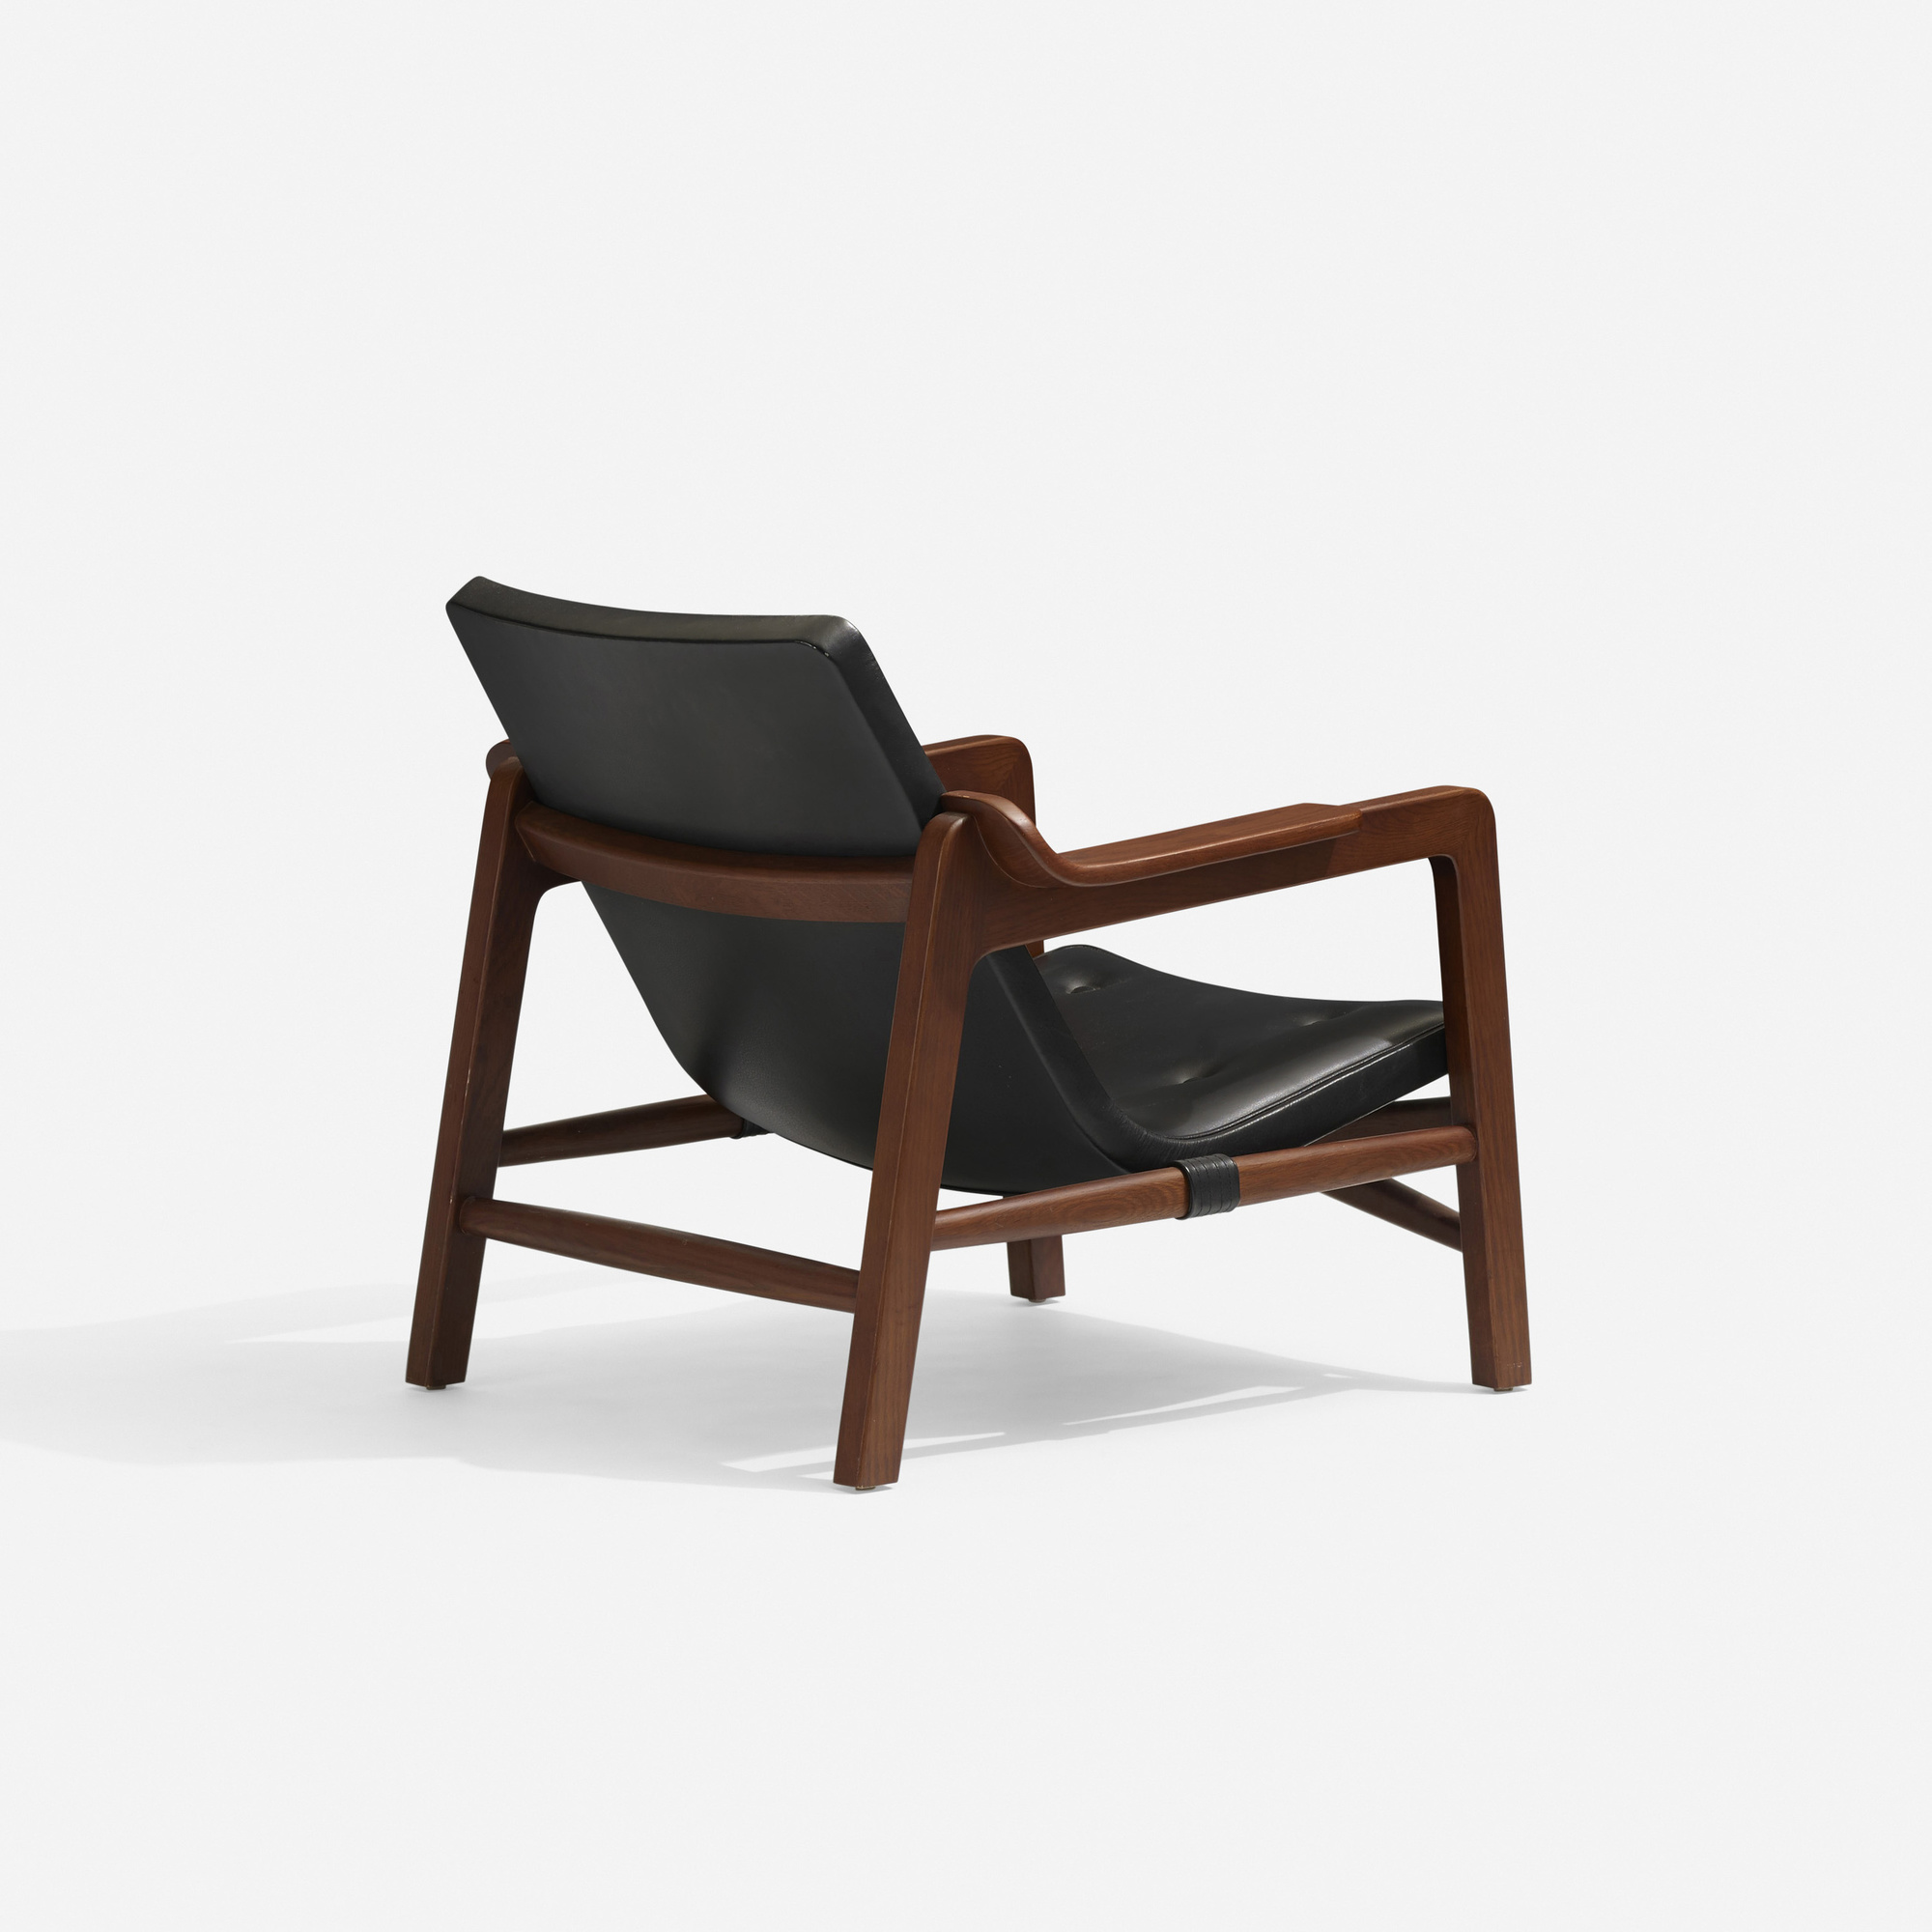 386: Edvard and Tove Kindt-Larsen / lounge chair (2 of 4)